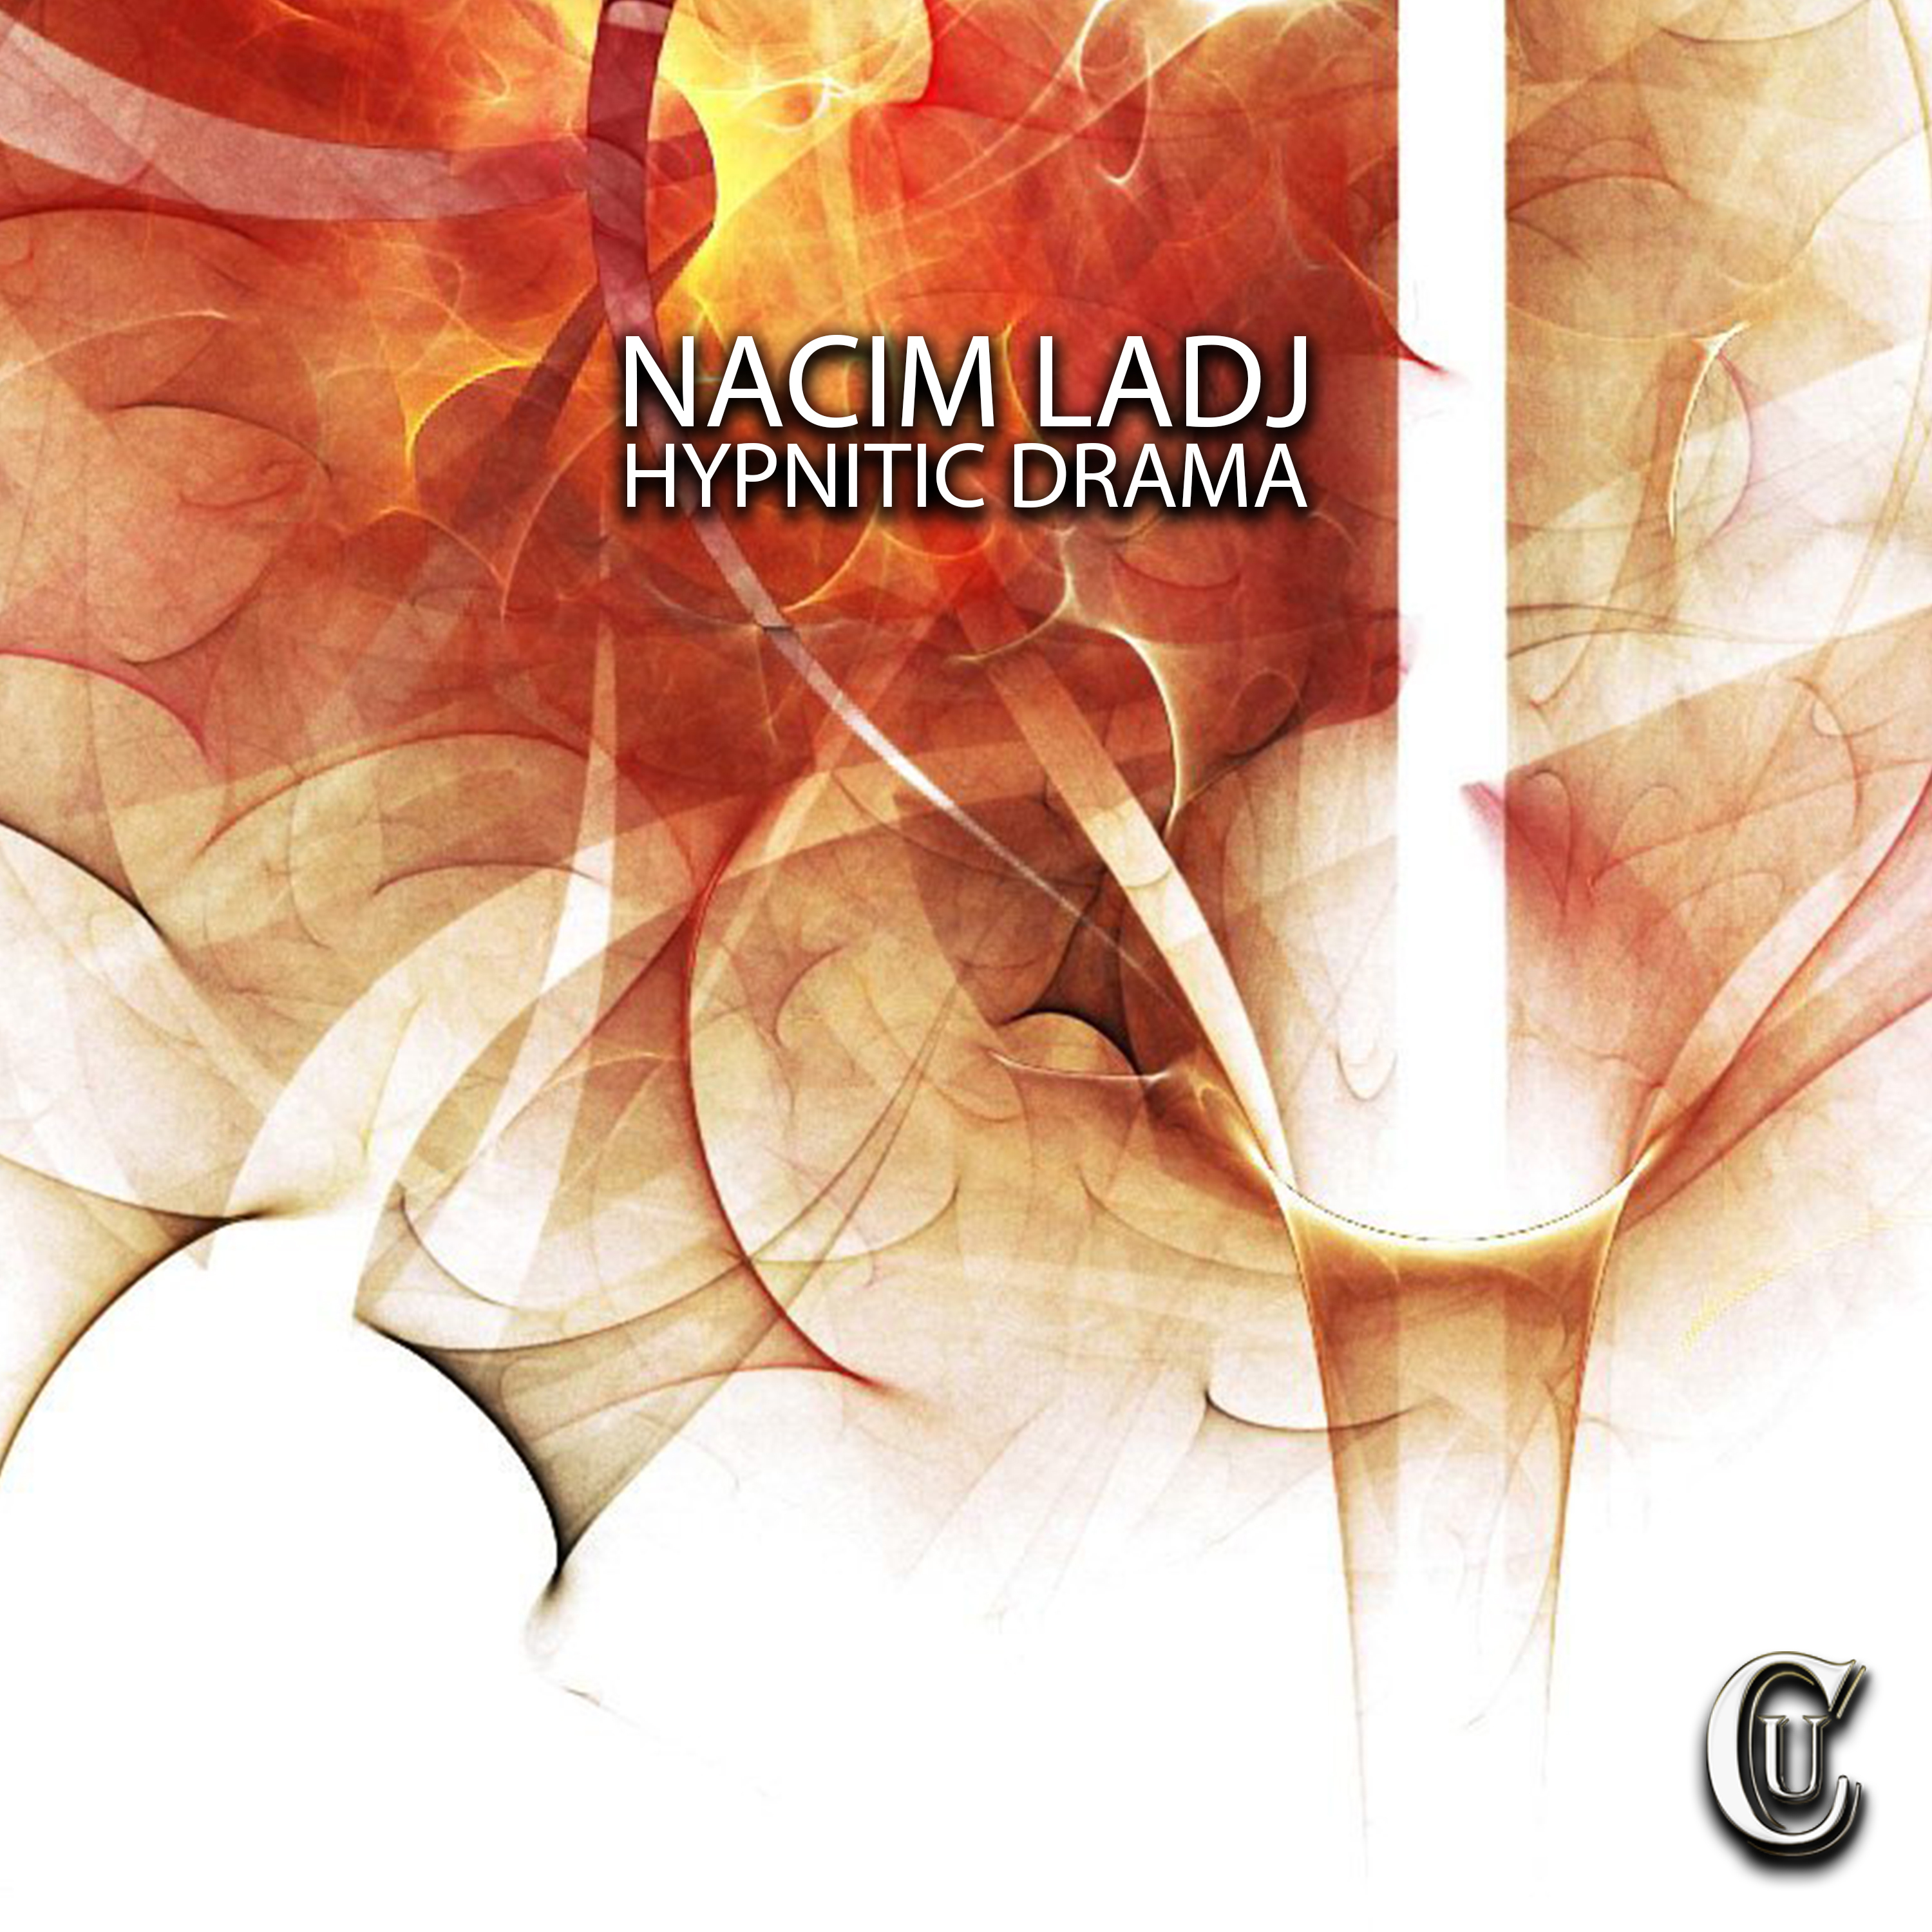 Nacim Ladj - Hypnotic Drama (Original mix)